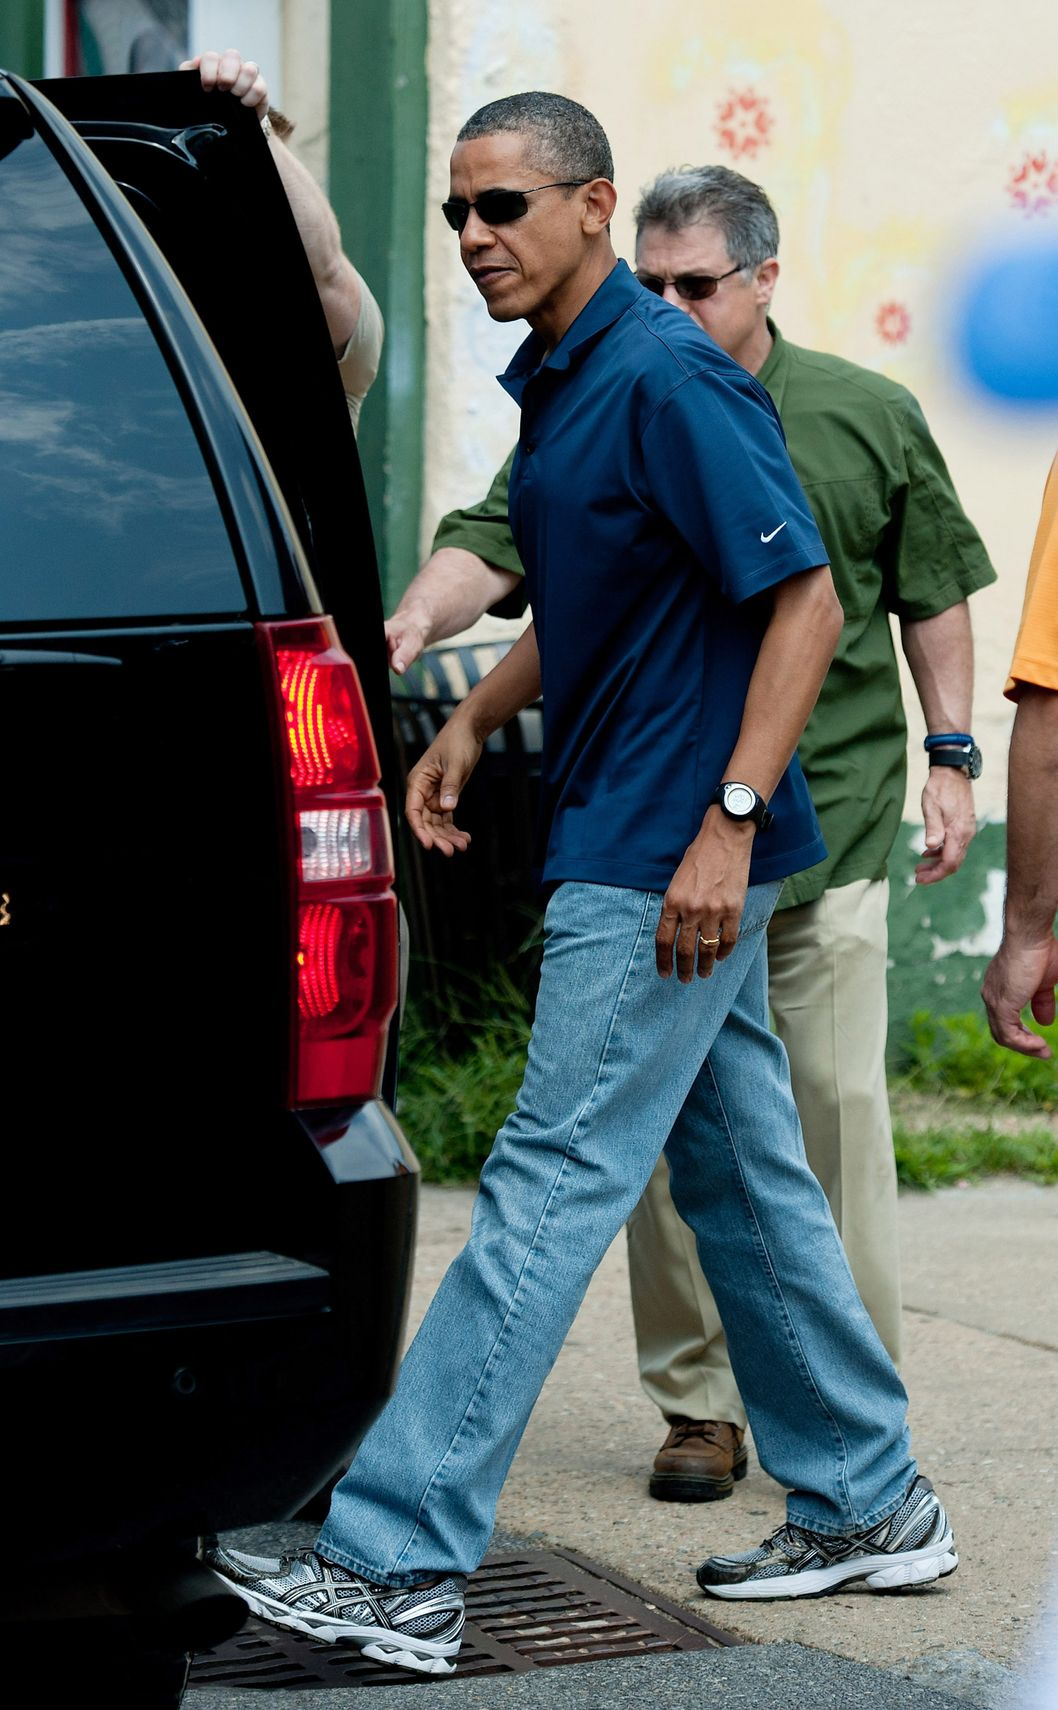 VINEYARD HAVEN, MA - AUGUST 19:  U.S. President Barack Obama returns to his vehicle after he and his daughters went to the Bunch of Grapes Book Store August 19, 2011 on Martha's Vineyard, Vineyard Haven, Massachusetts. (Photo by CJ Gunther-Pool/Getty Images)